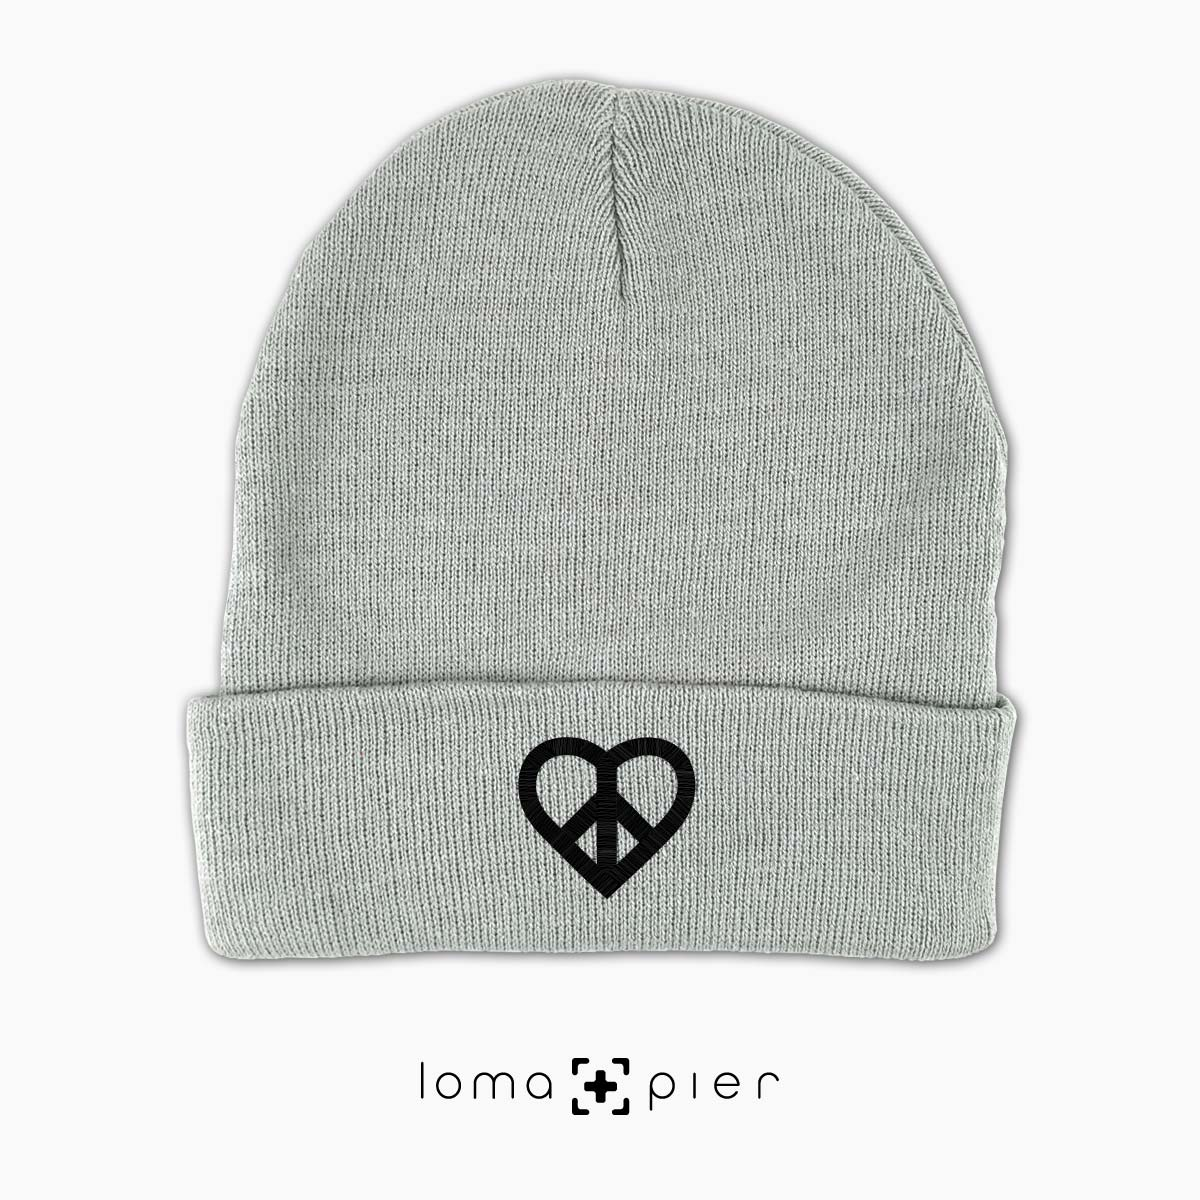 HEART and PEACE SIGN icon beanie cap by the loma+pier hat shop